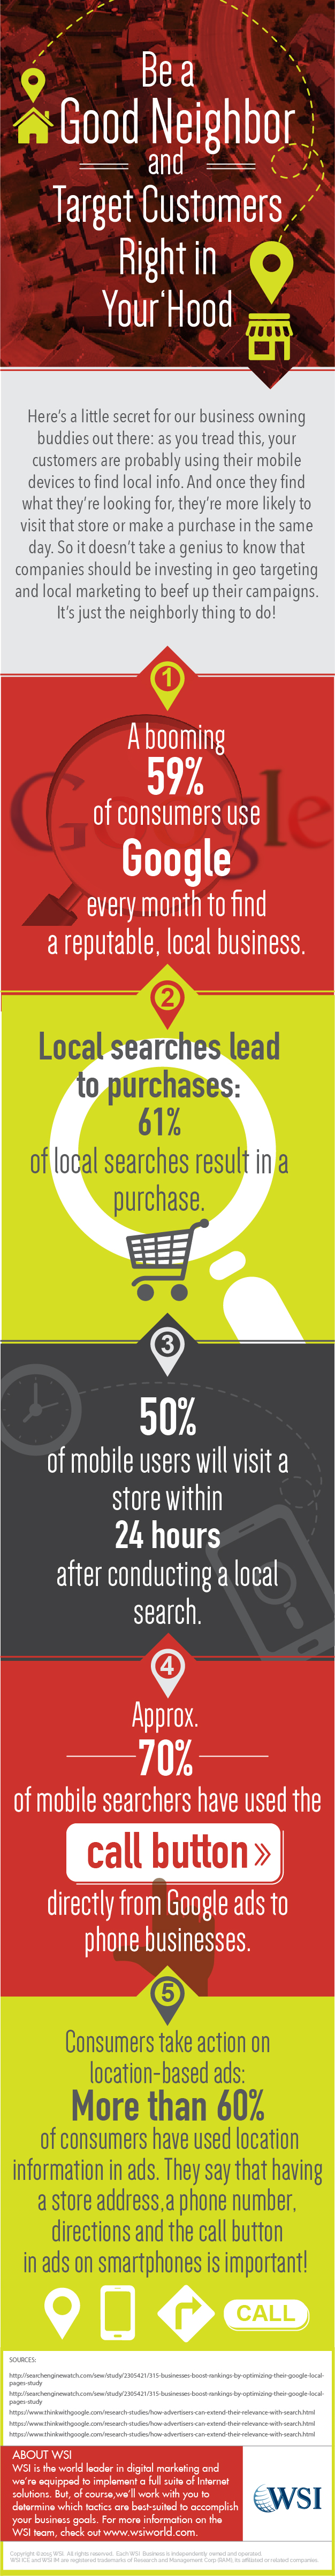 Why Local Businesses Should Use Geo-Targeted Advertising